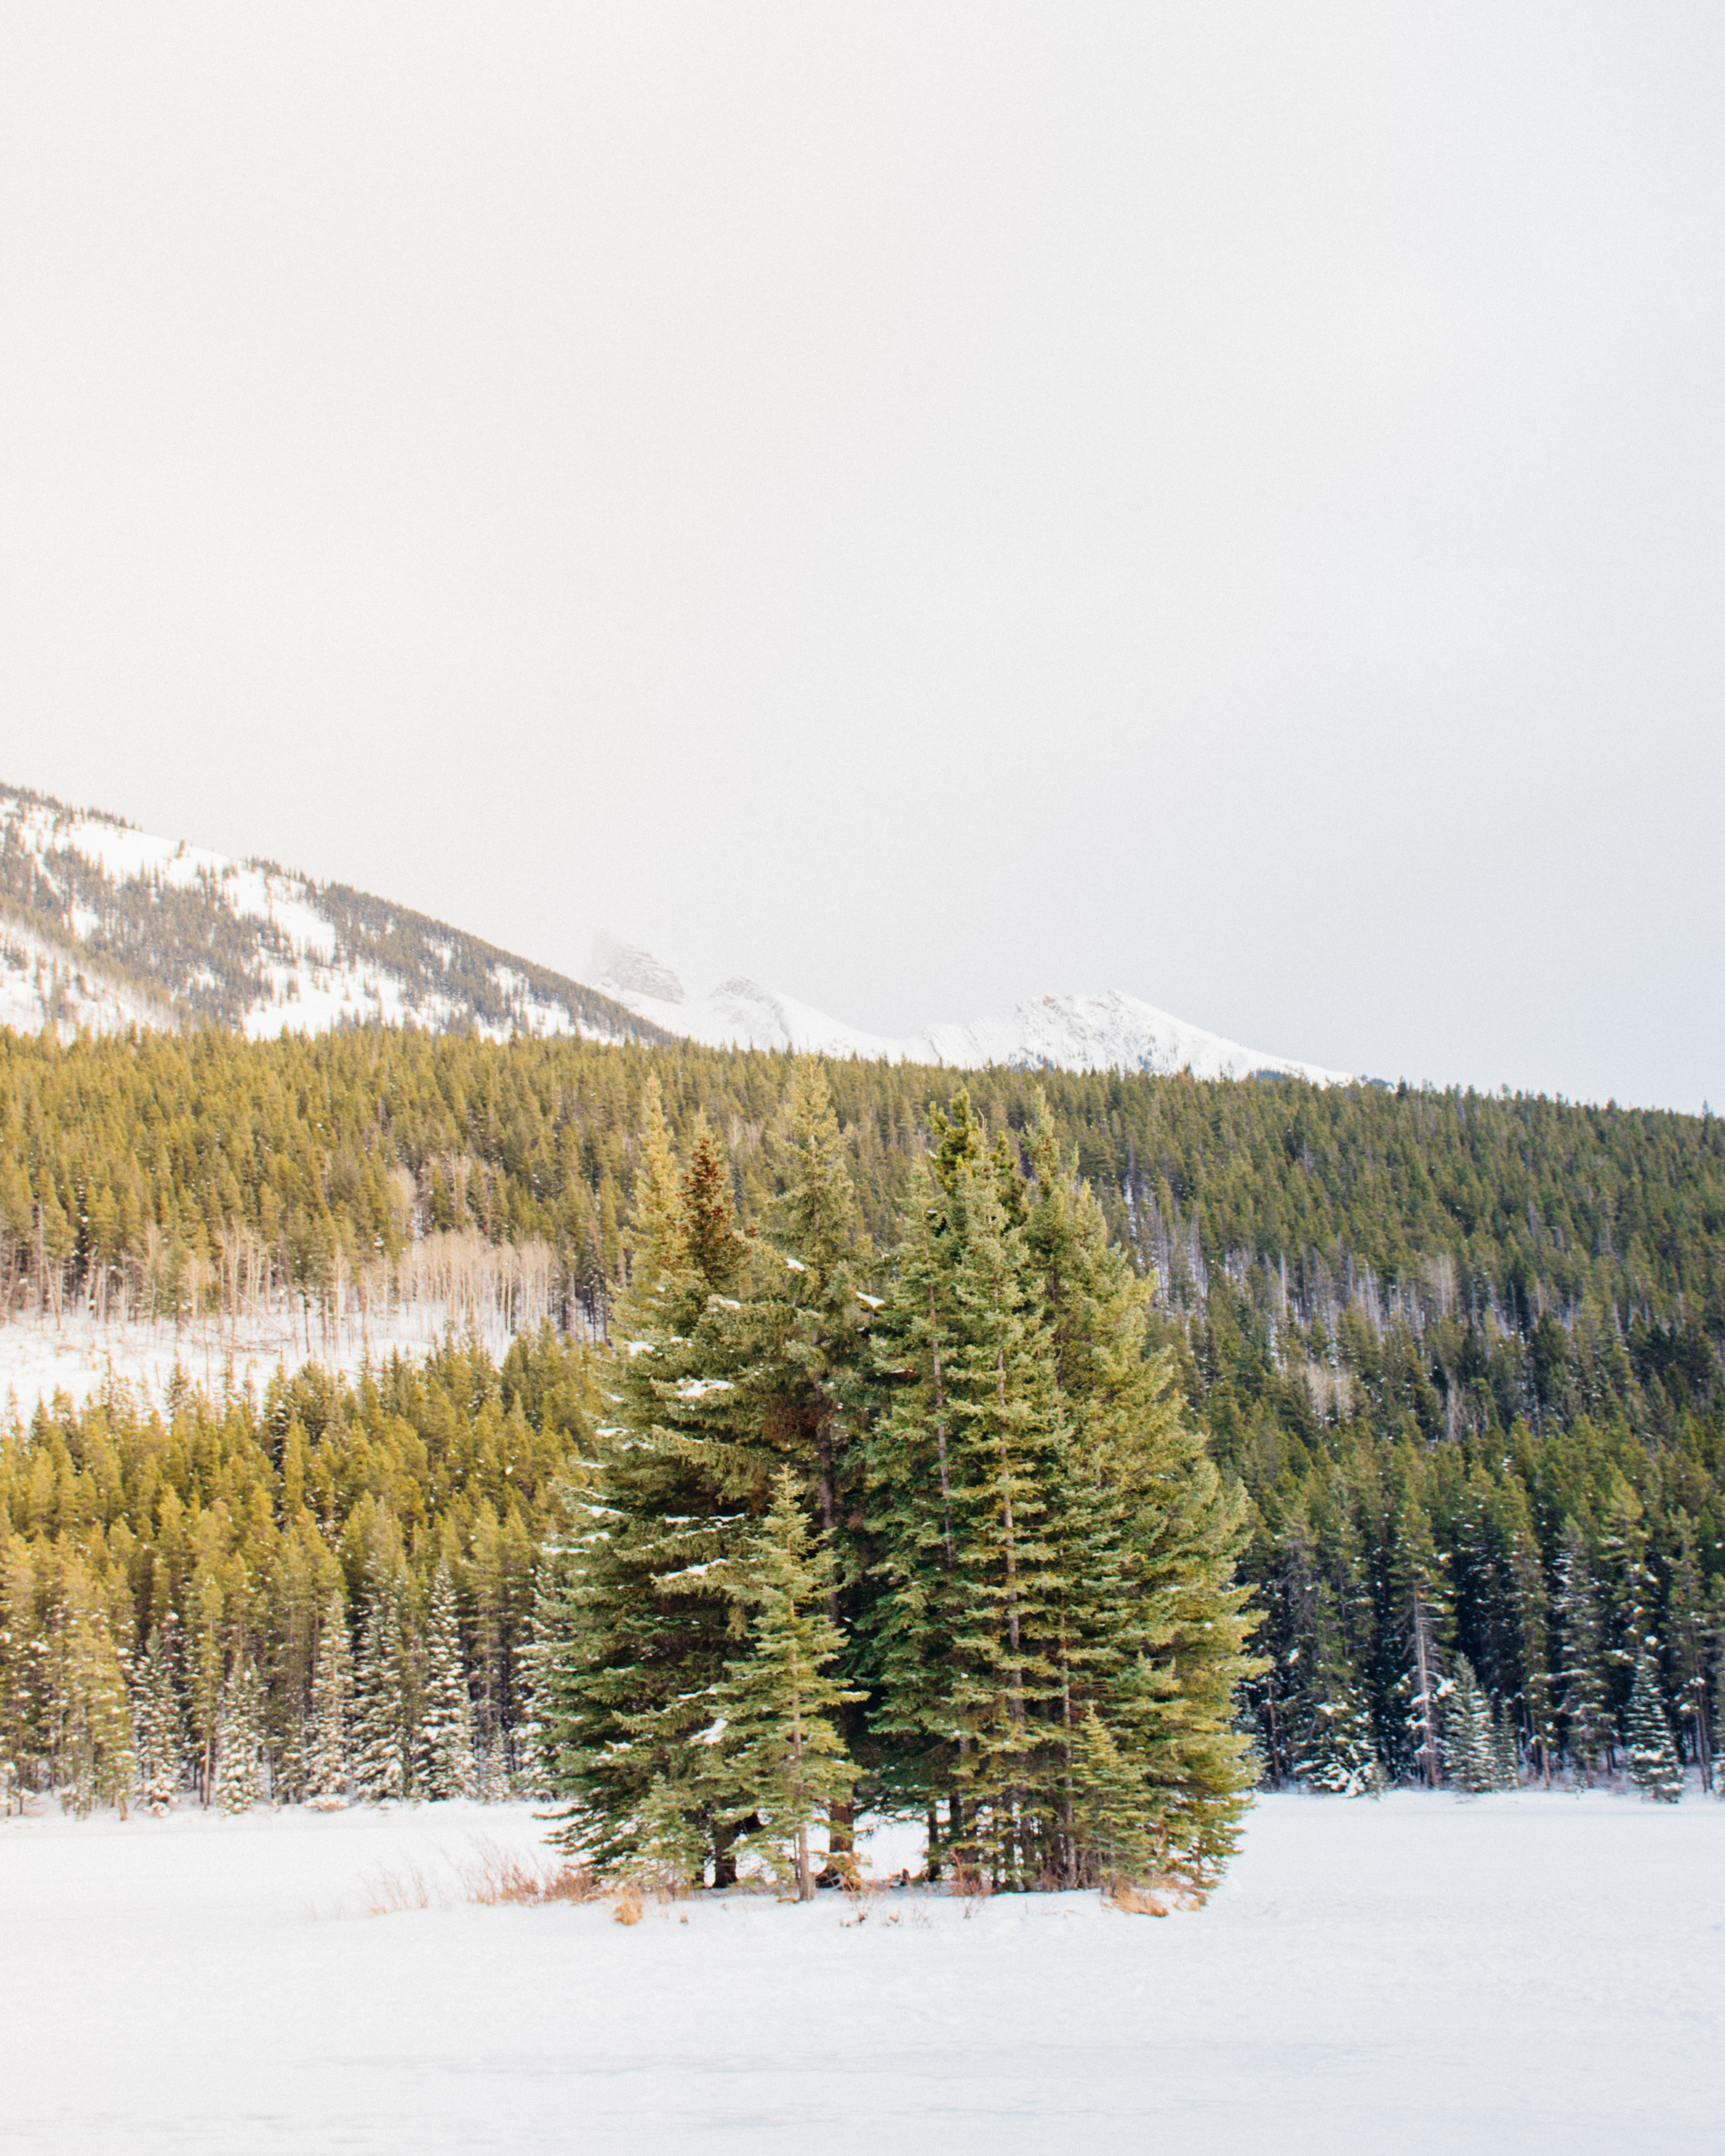 green pine trees surrounded with snow during daytime